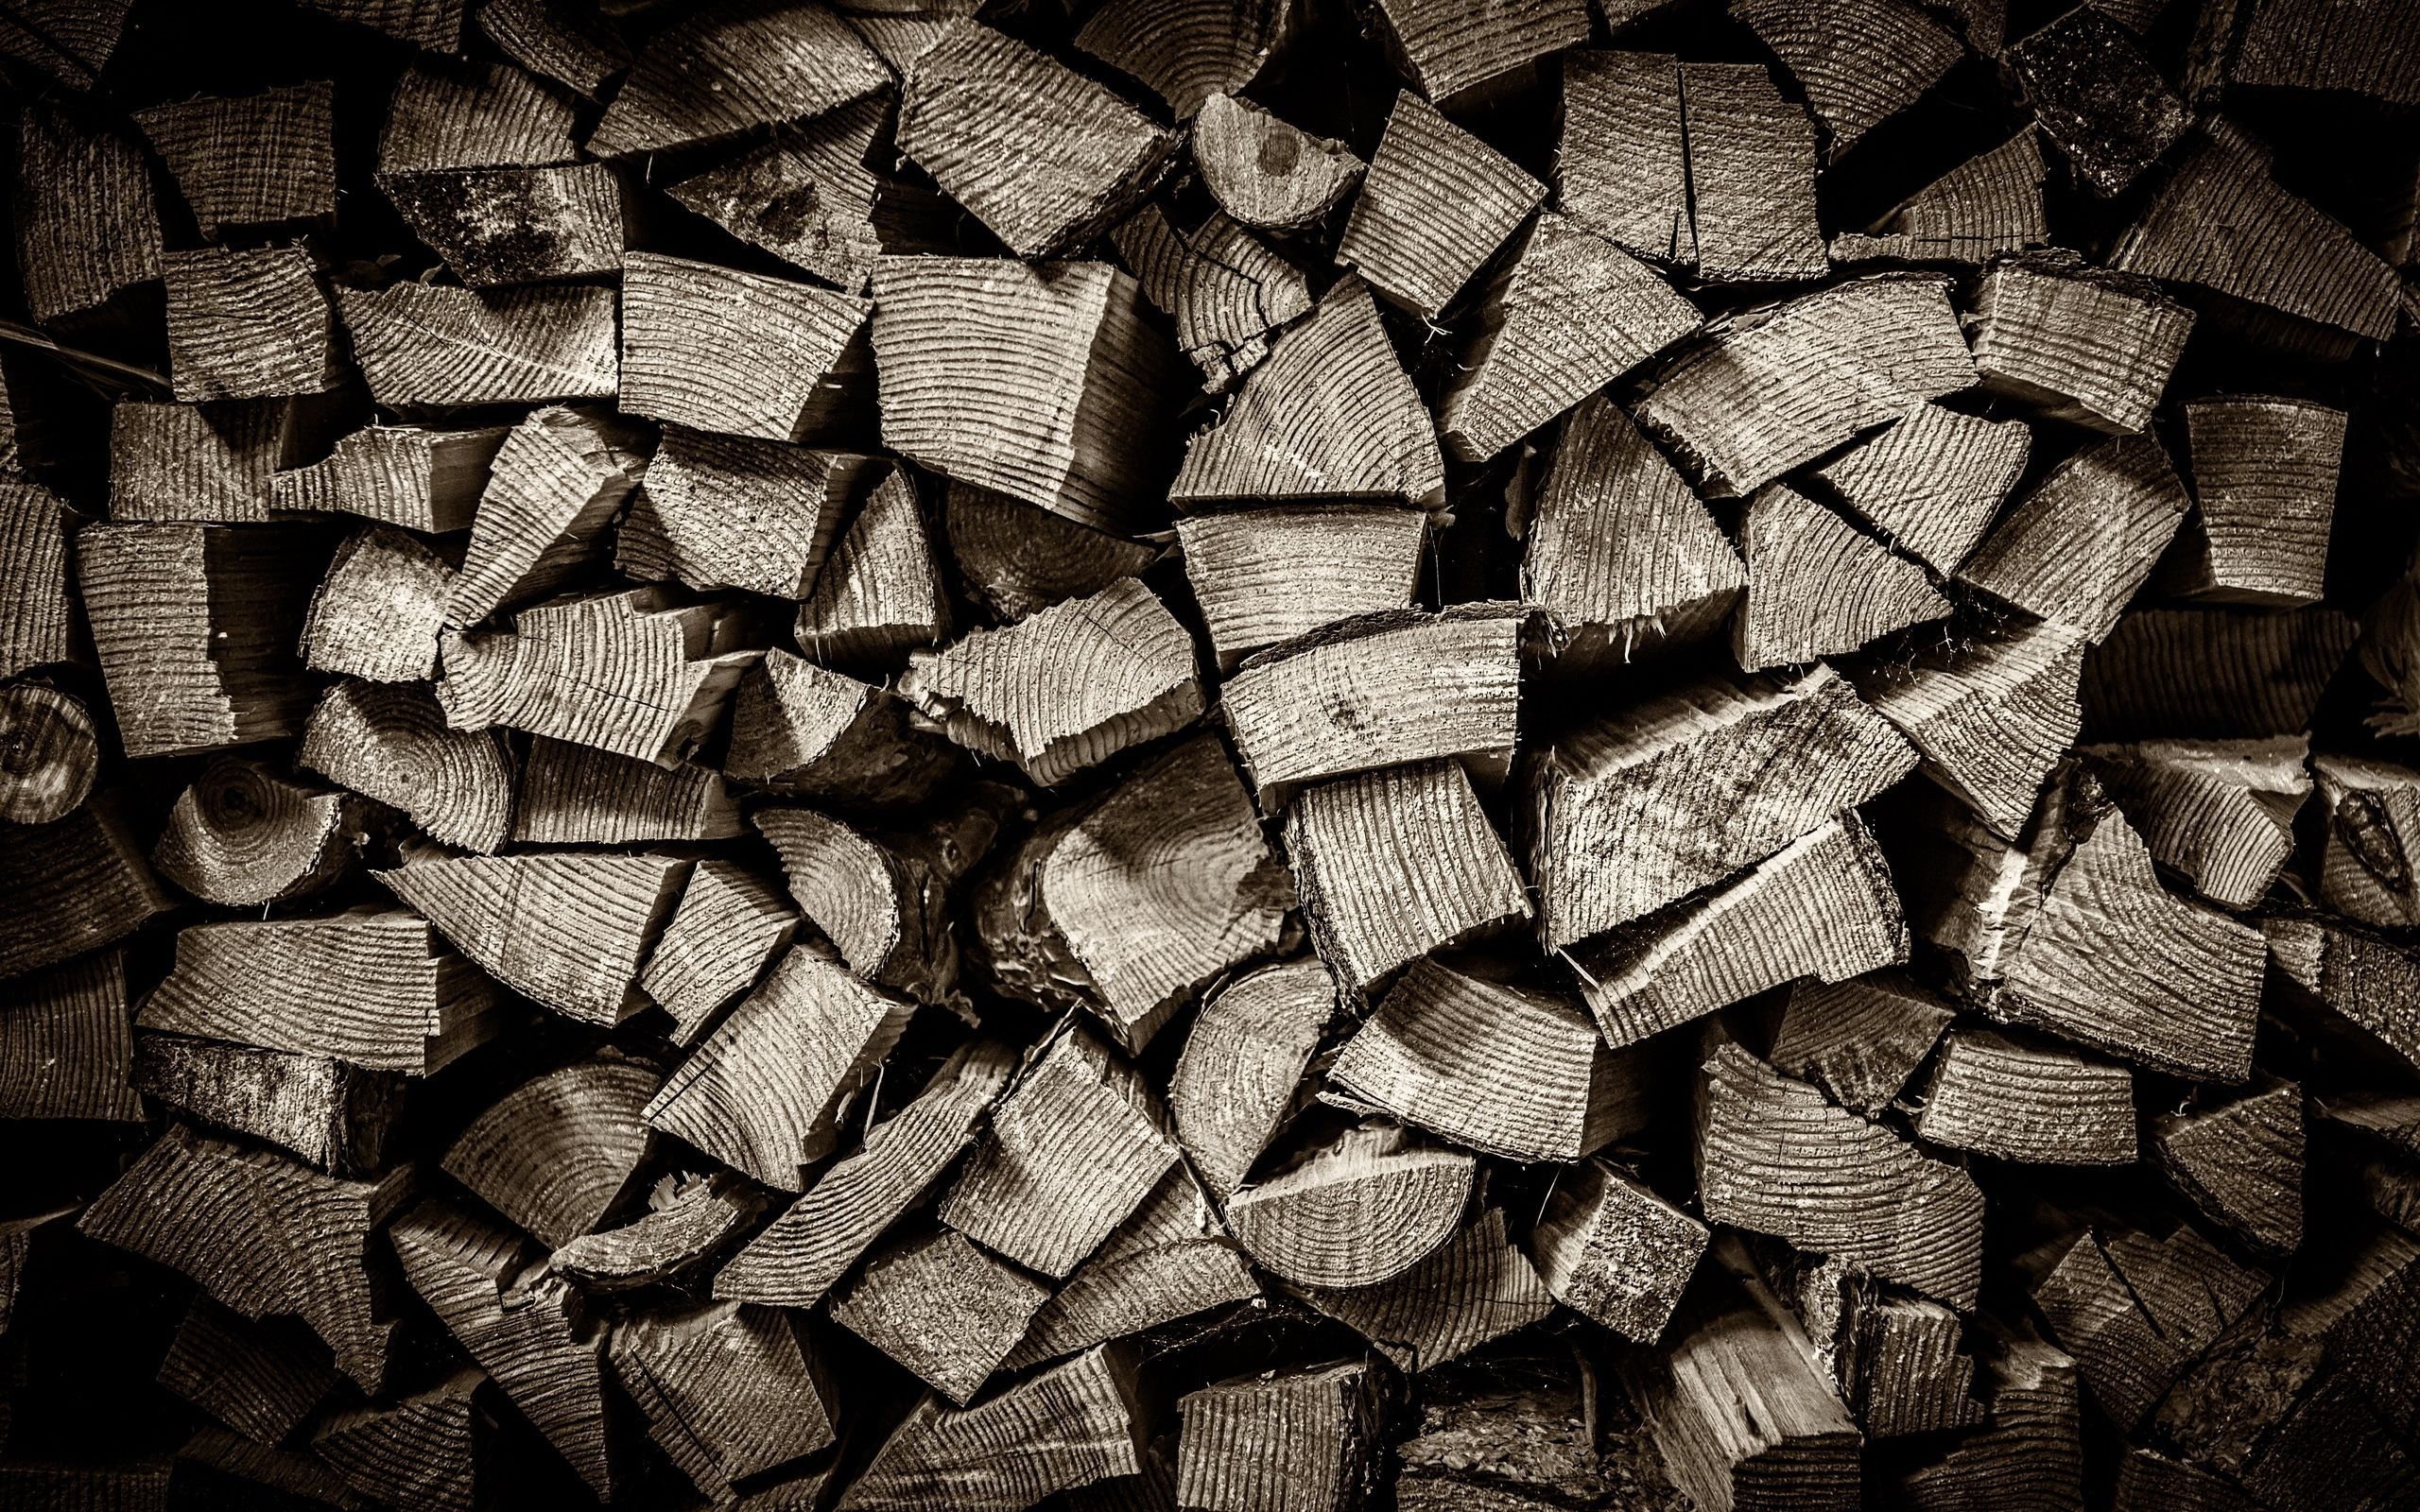 2560x1600 Wallpaper of Pile of Wood, black and white, wood Desktop Picture ...